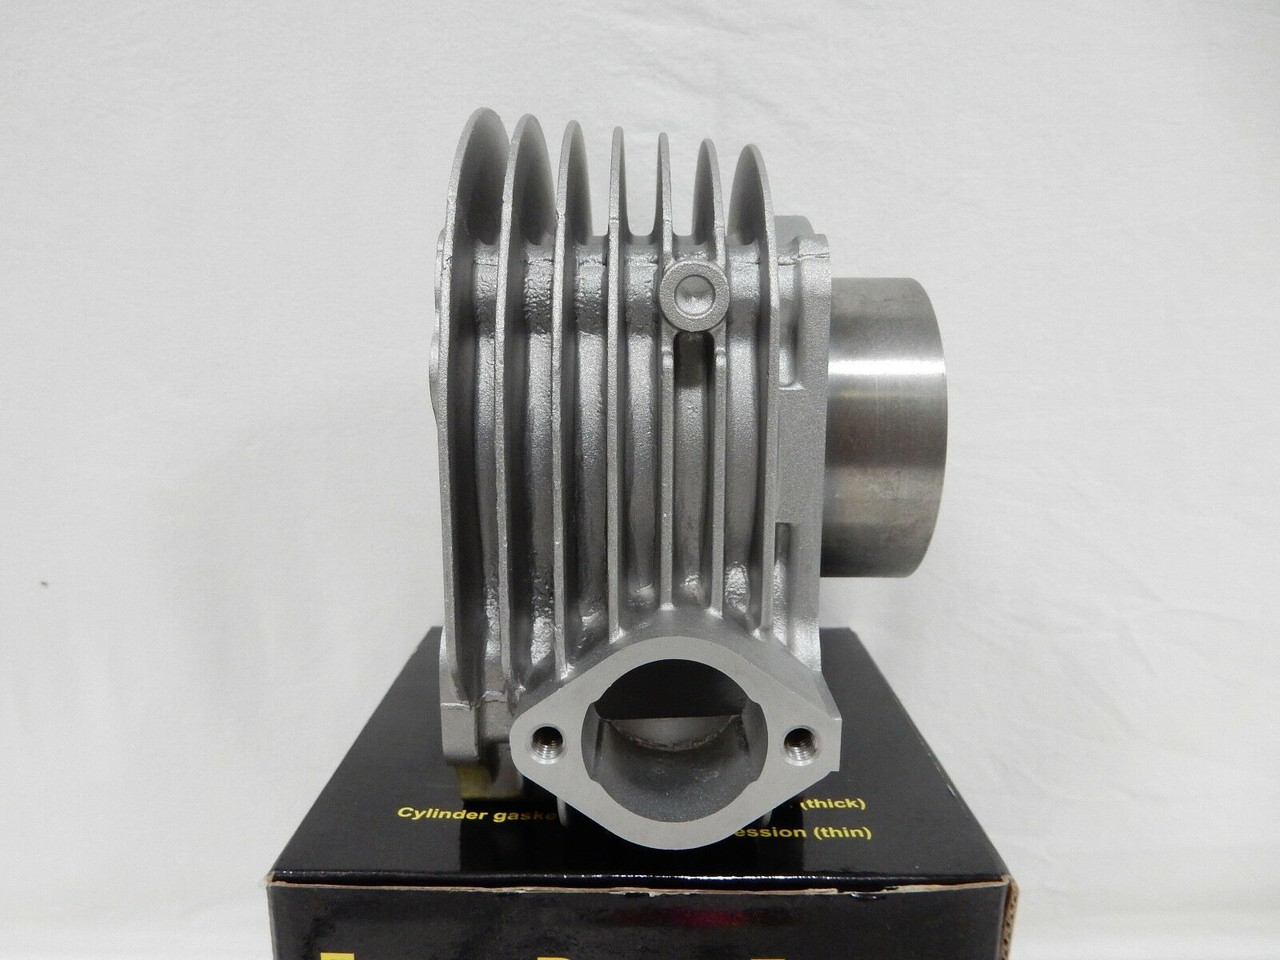 TAIDA PERFORMANCE 180cc (63mm) GY6 CYLINDER SET WITH (54mm SPACING) W/ HIGH COMPRESSION DOME FORGED PISTON